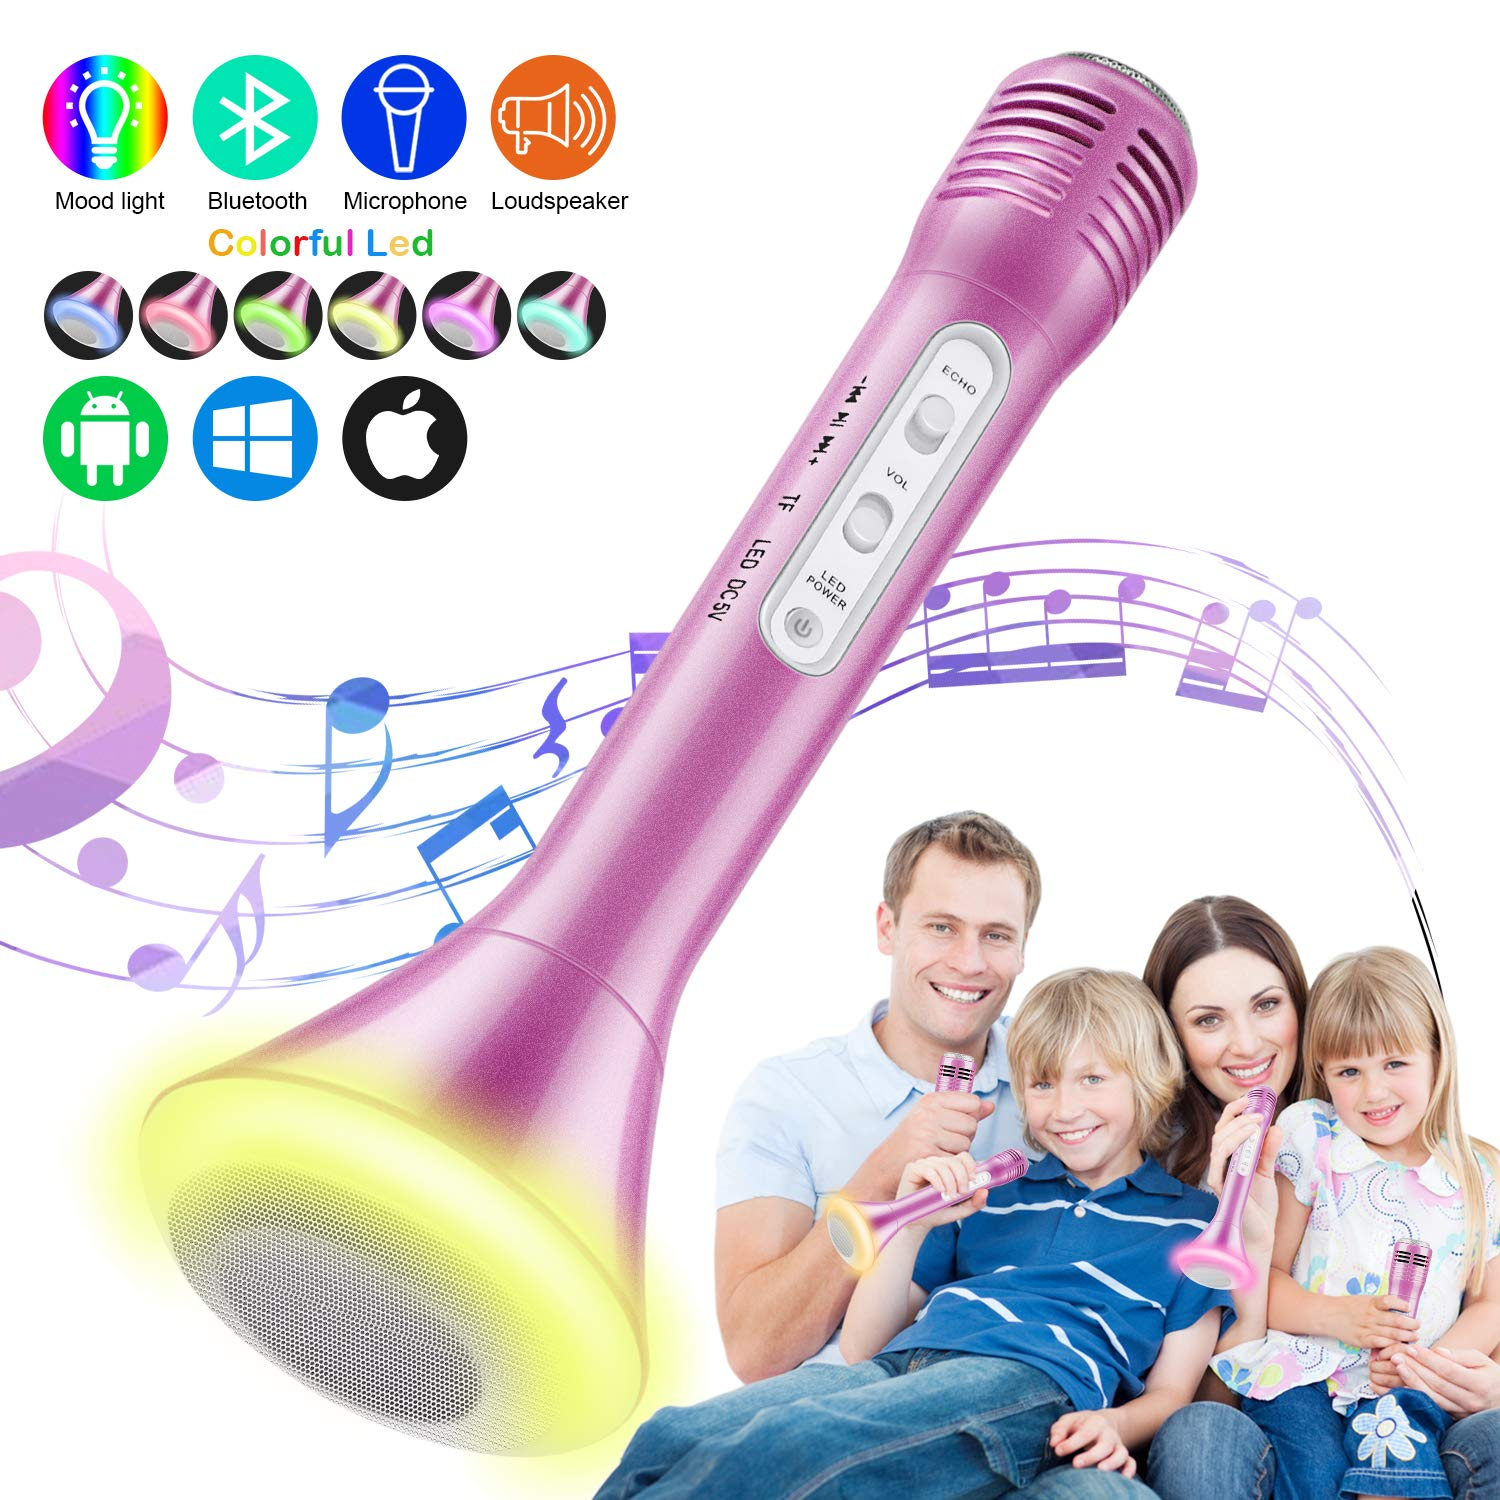 Magicfun Kids Microphone, Karaoke Microphone Bluetooth Wireless Portable Handheld Easter Christmas Birthday Home Party Gifts Toys for 4 5 6 7 8 9 4+ Year Old Girls Boys Microphone (Pink)